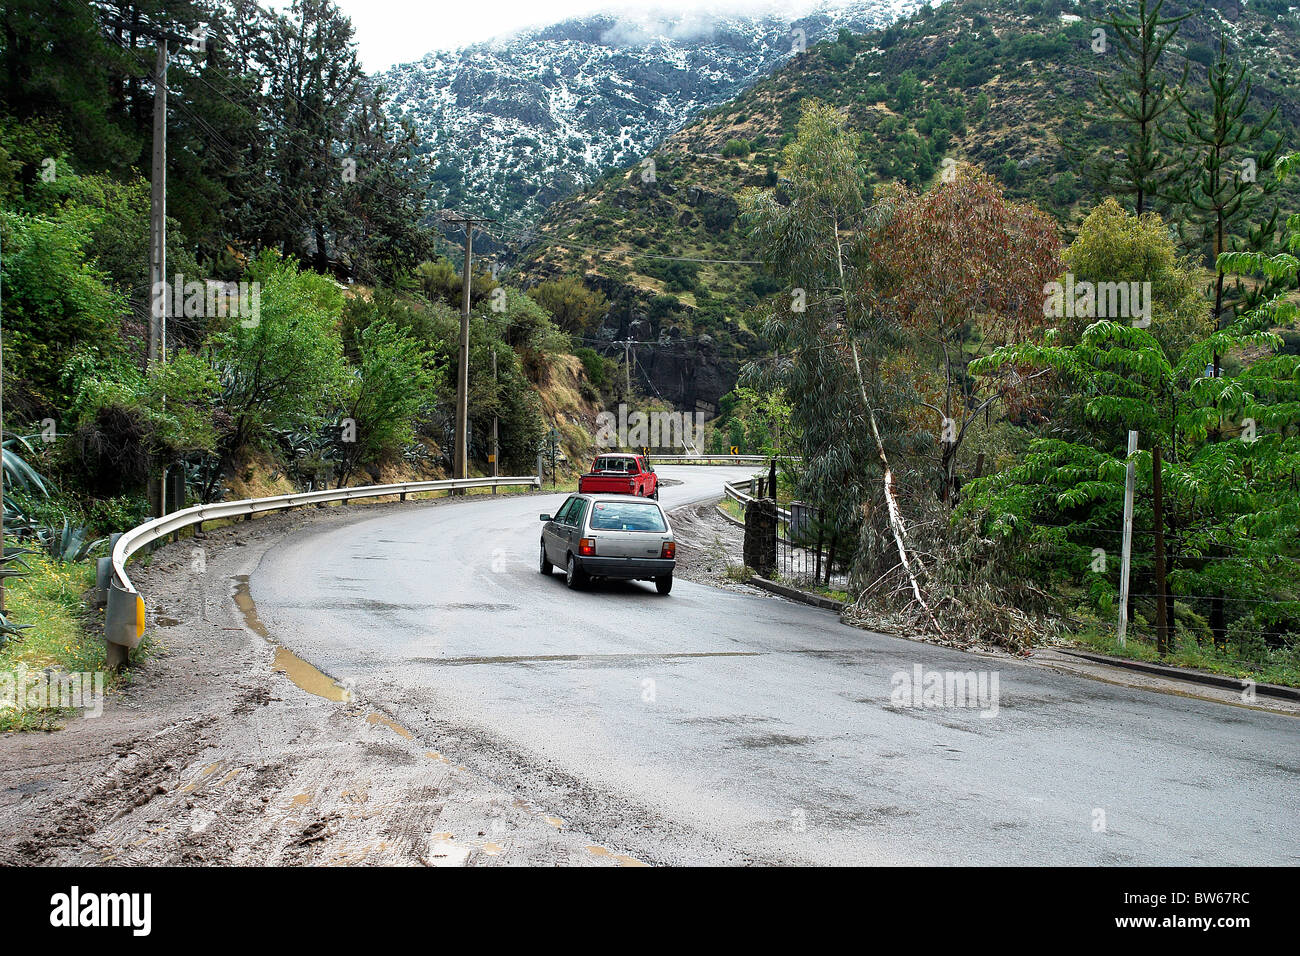 Road with beautiful vegetation in the cordillera of the Andes, winter, tourism Chile Santiago. - Stock Image